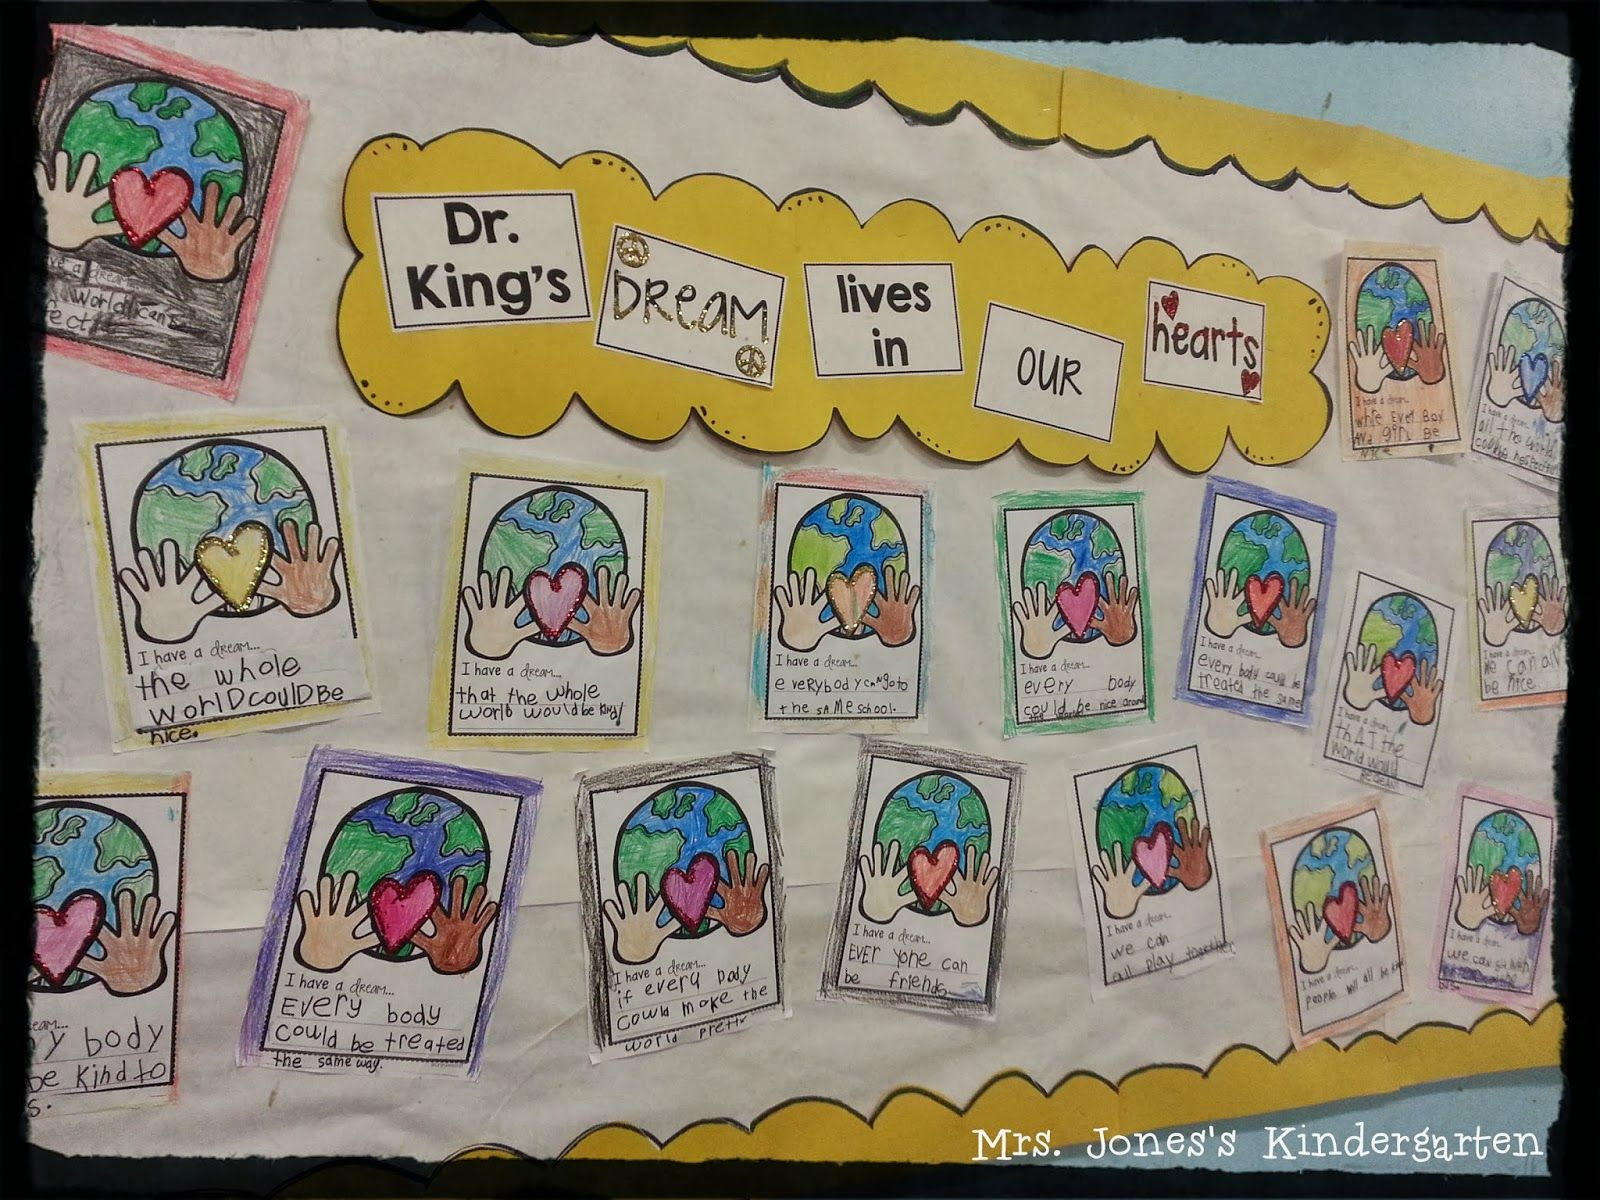 Martin Luther King Jr Bulletin Board Dr King S Dream Lives In